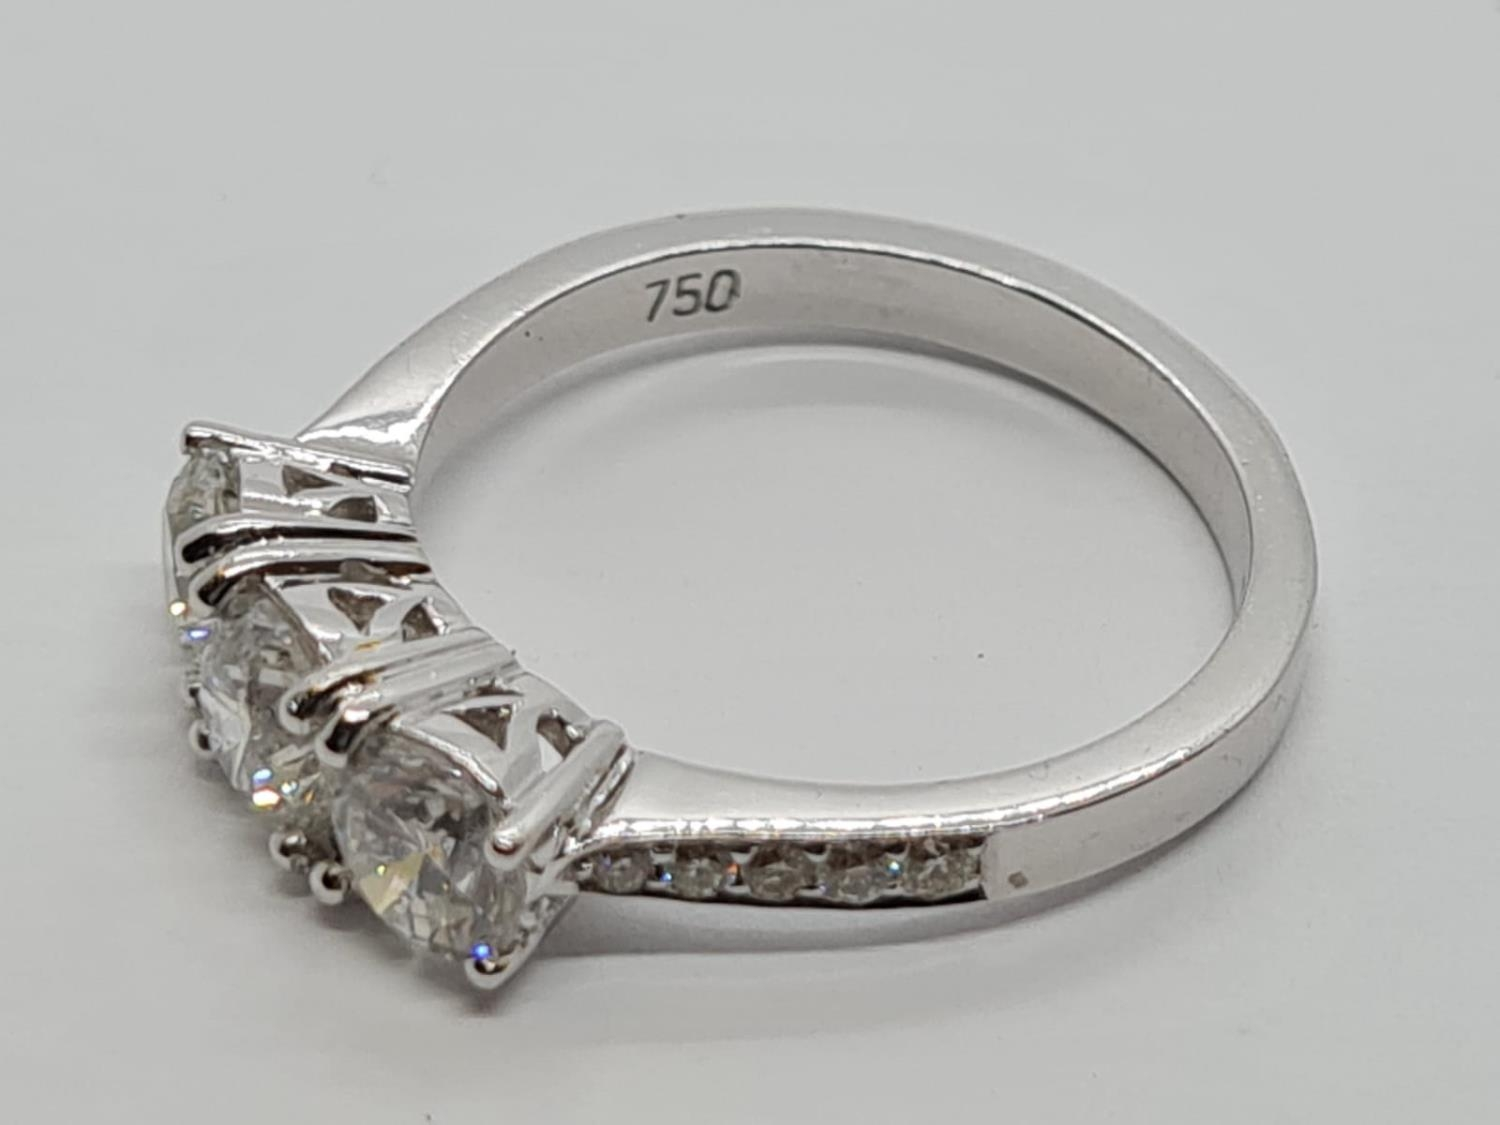 18ct White Gold with Trilogy set of 1.5ct Diamonds and further encrusted diamonds on the shoulder. - Image 4 of 6